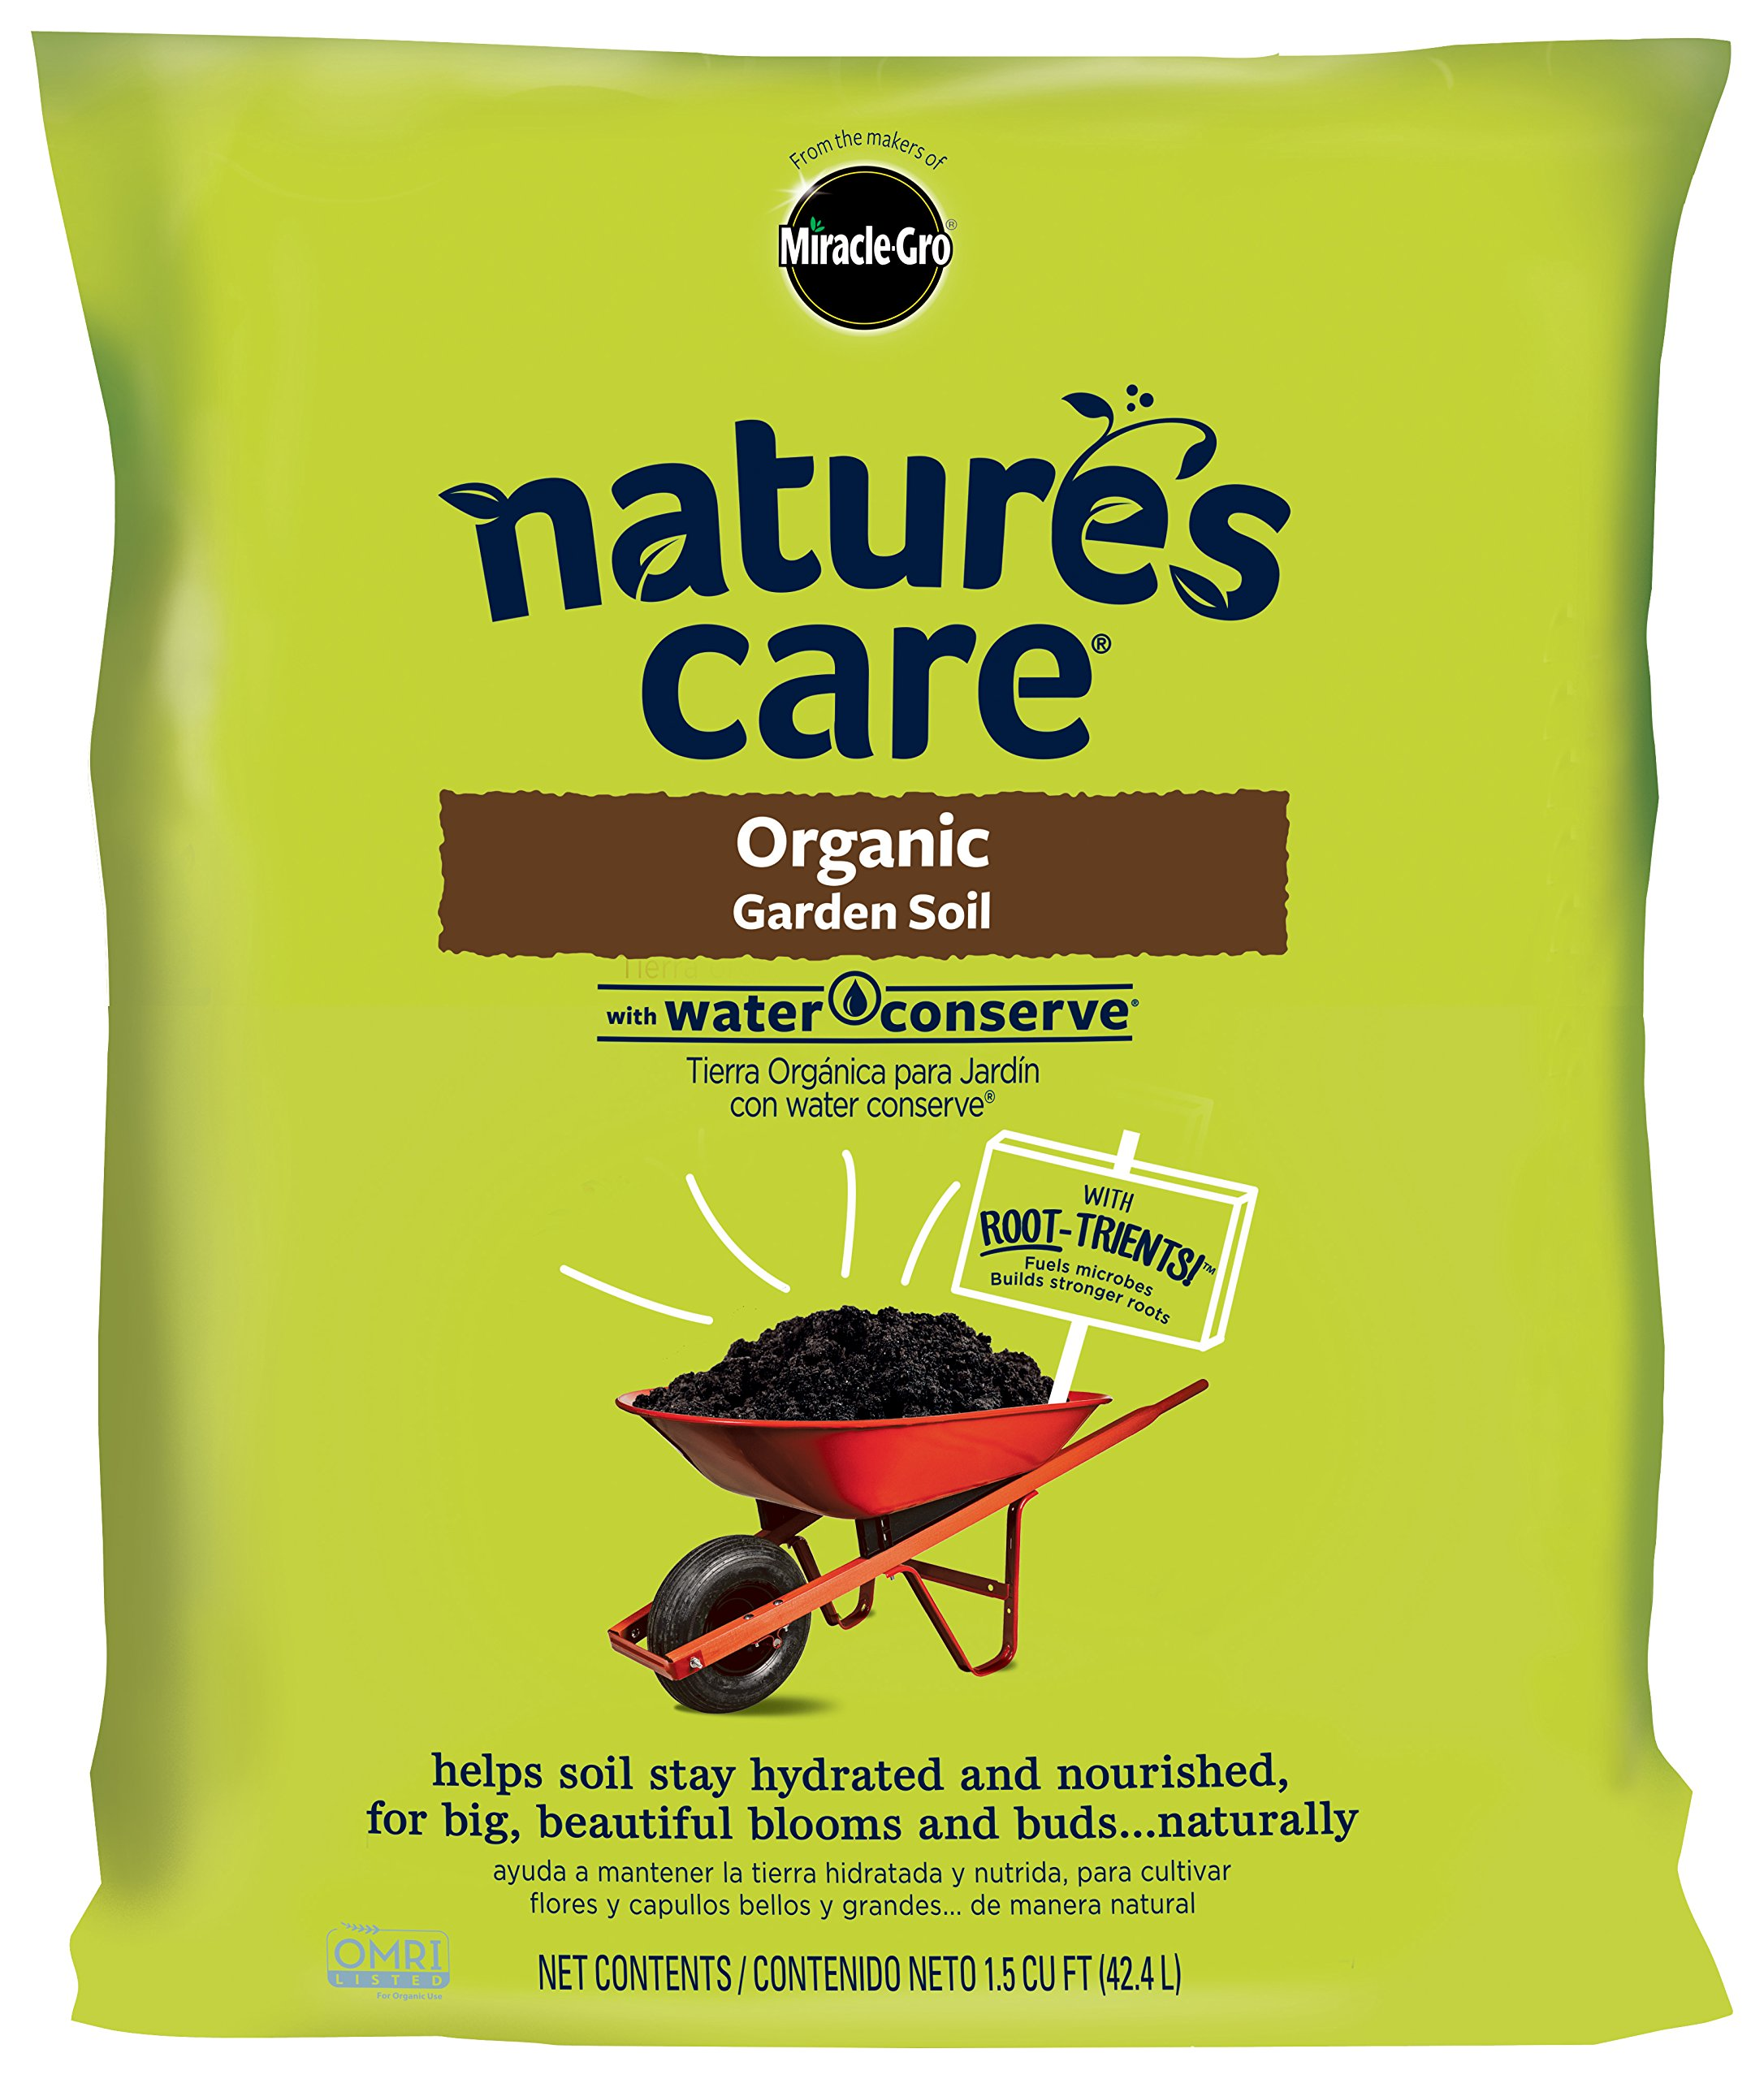 Miracle-Gro Nature's Care Organic Garden Soil with Water Conserve, 1.5 cu. ft.